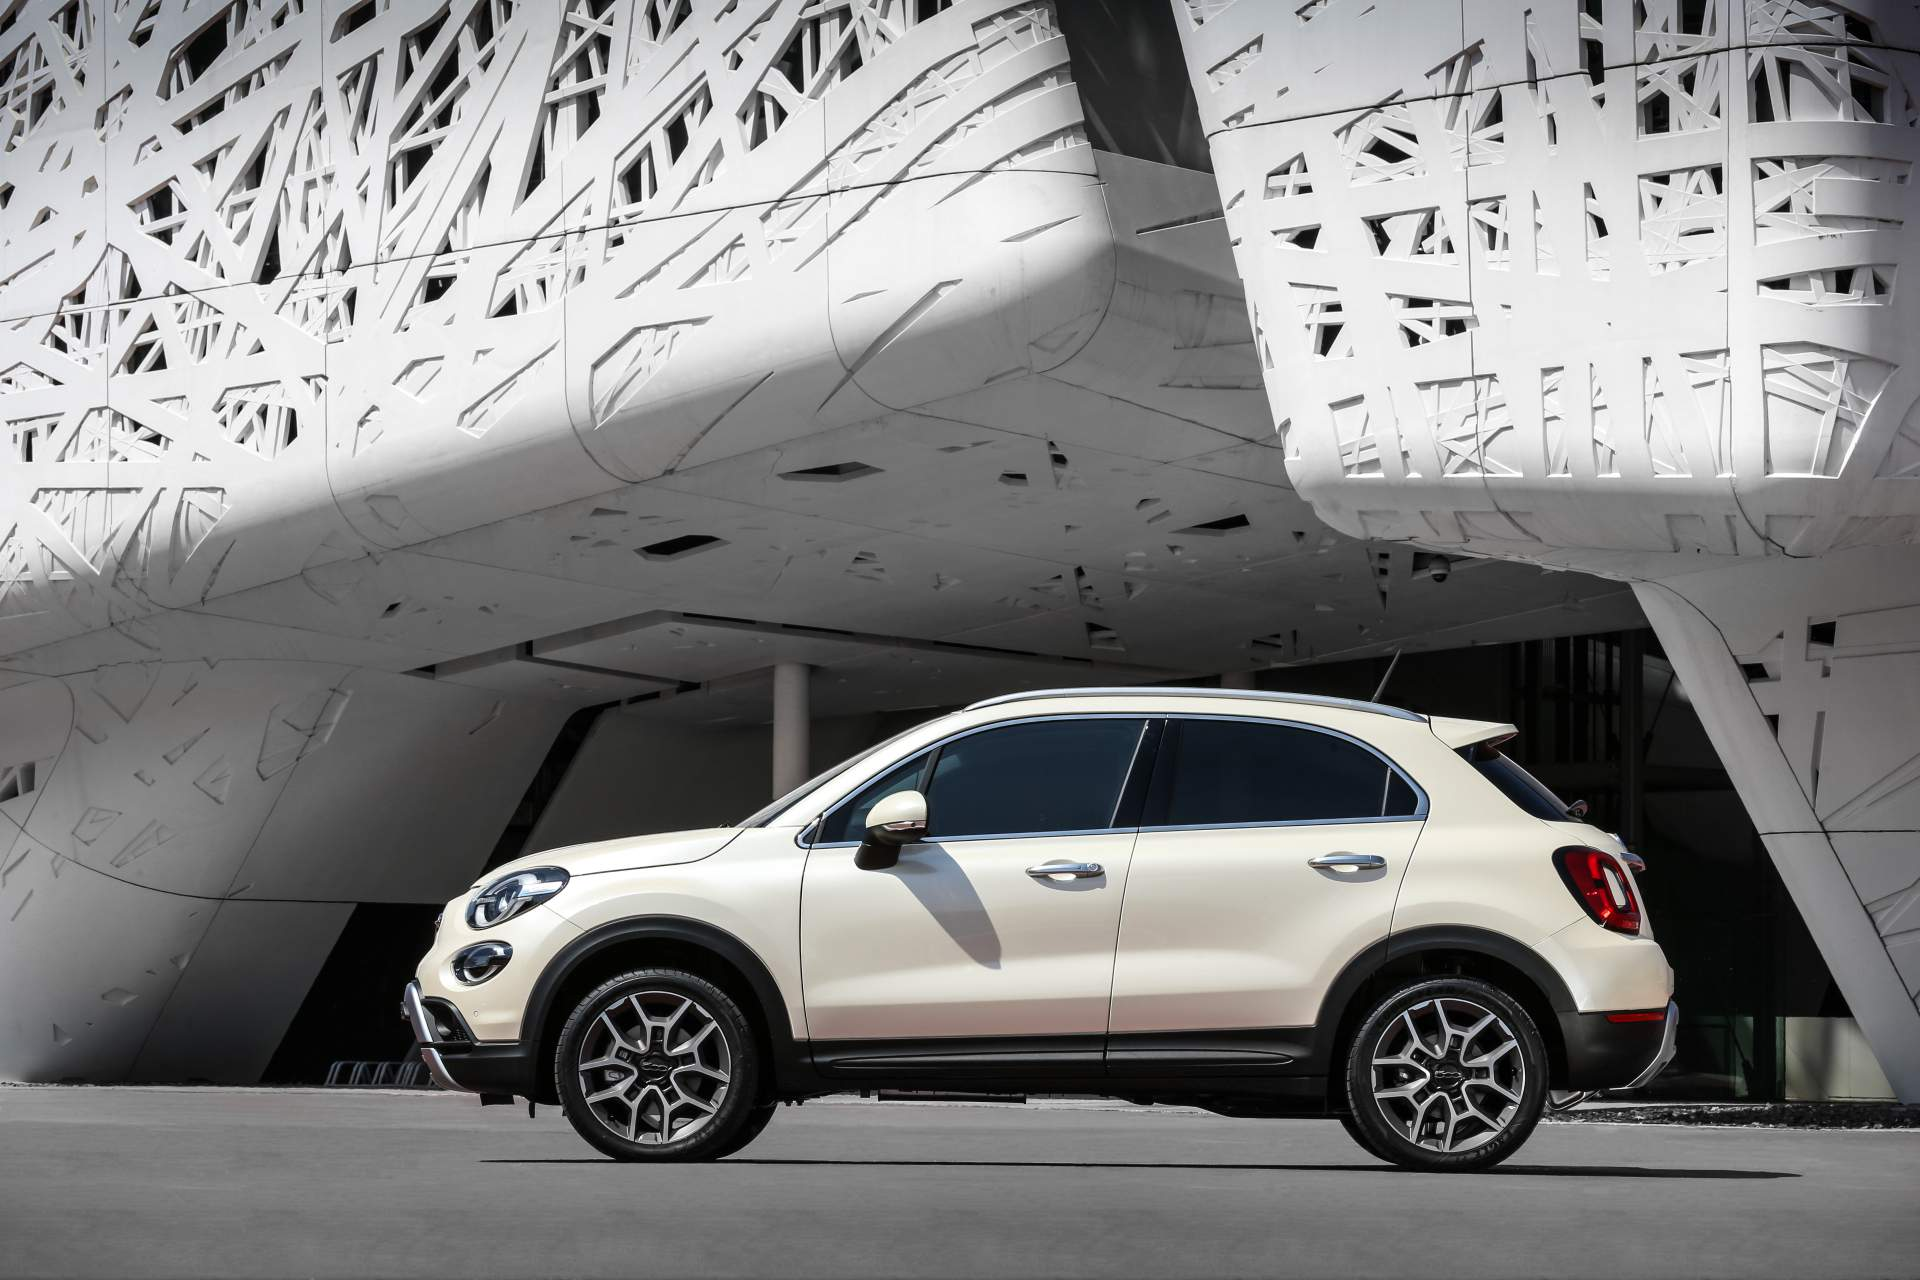 2019 Fiat 500x Facelifted To Match The 2019 Jeep Renegade